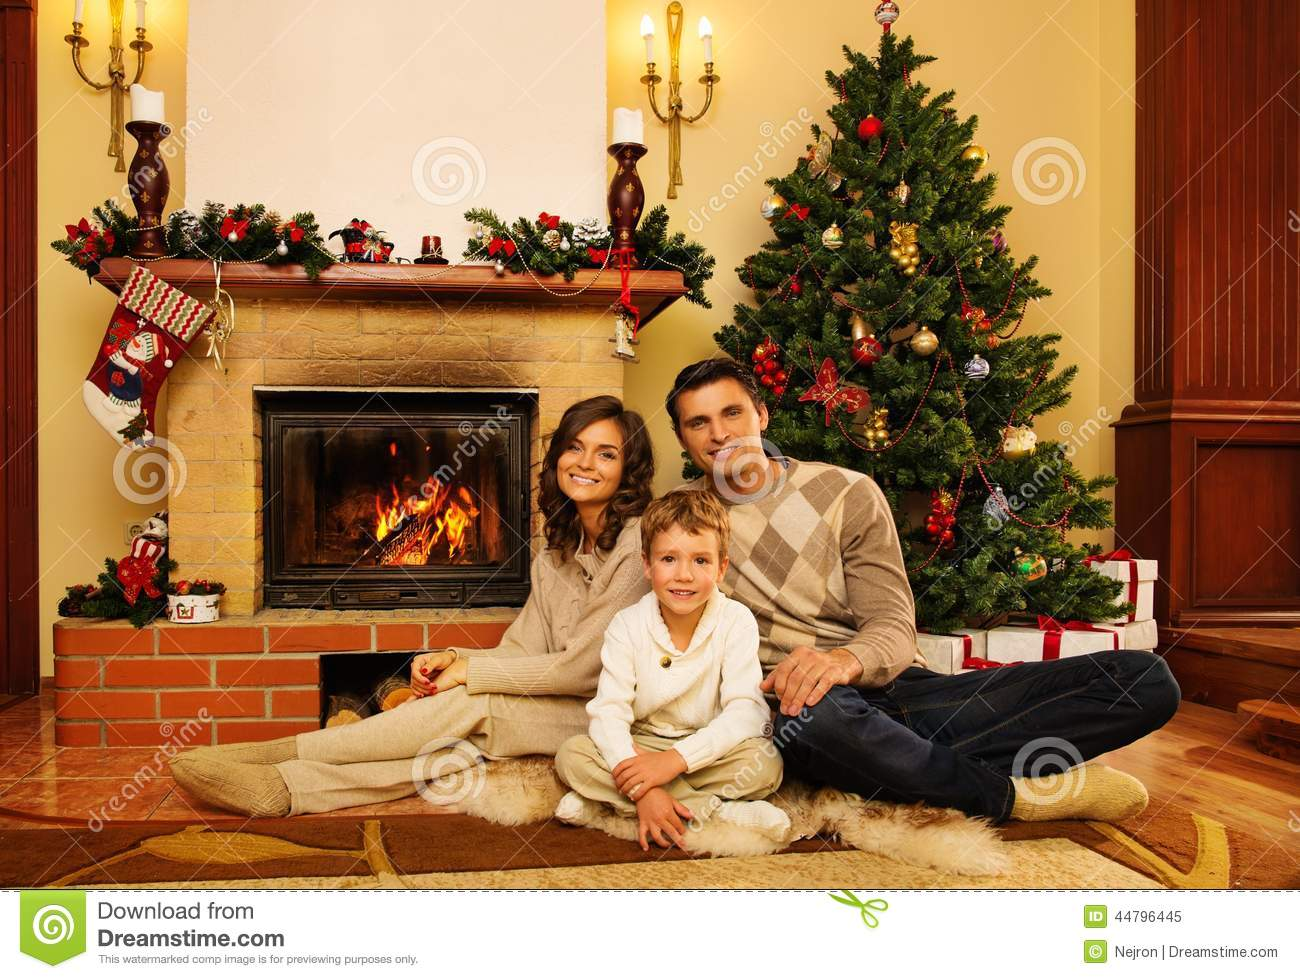 Family Near Fireplace In House Interior Stock Image Image Of Noel Girl 44796445